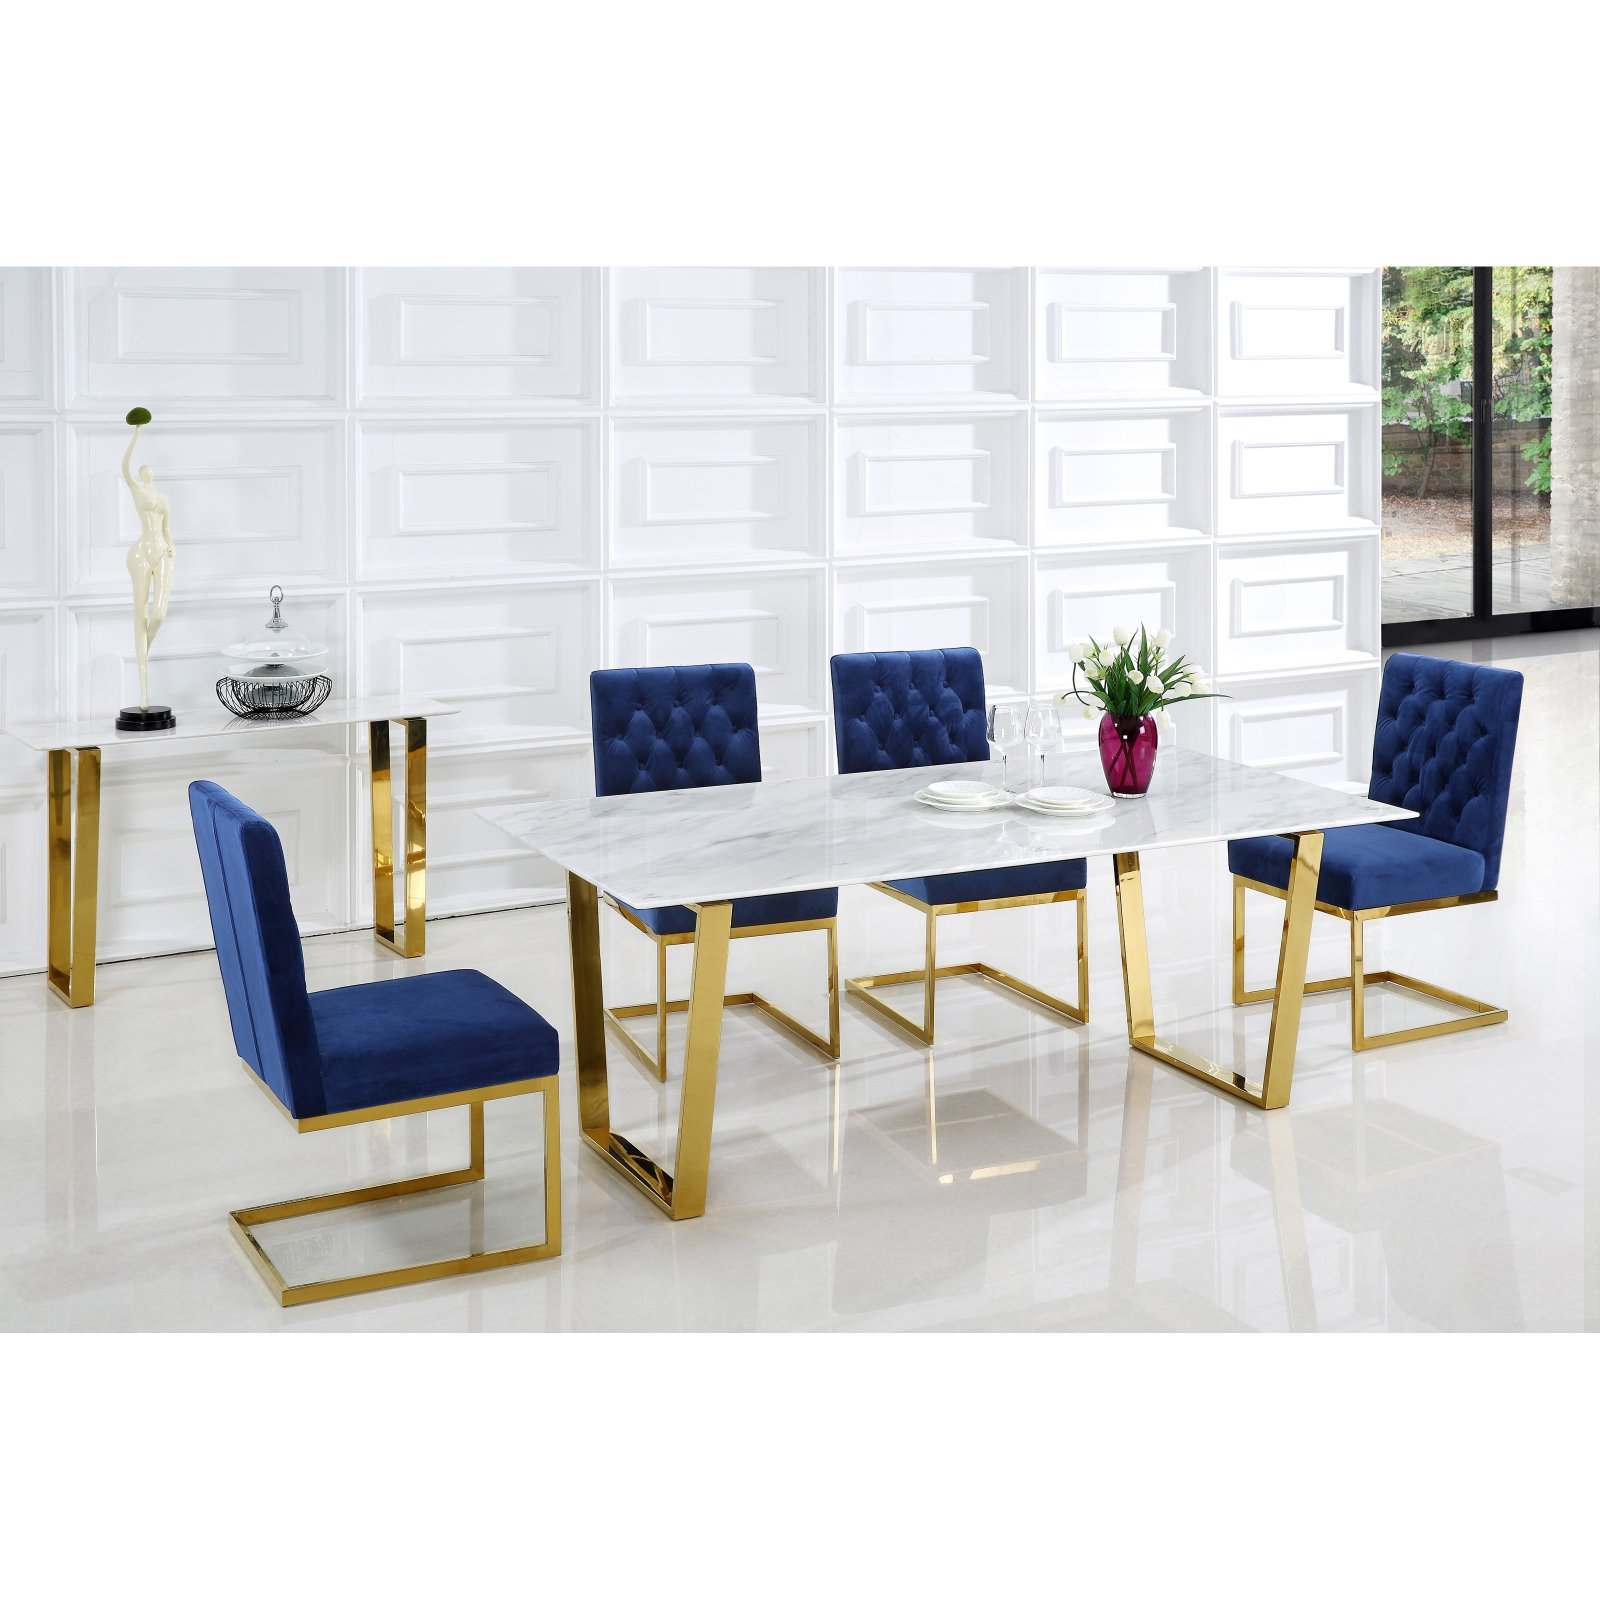 Meridian Furniture Inc Cameron Gold Dining Table